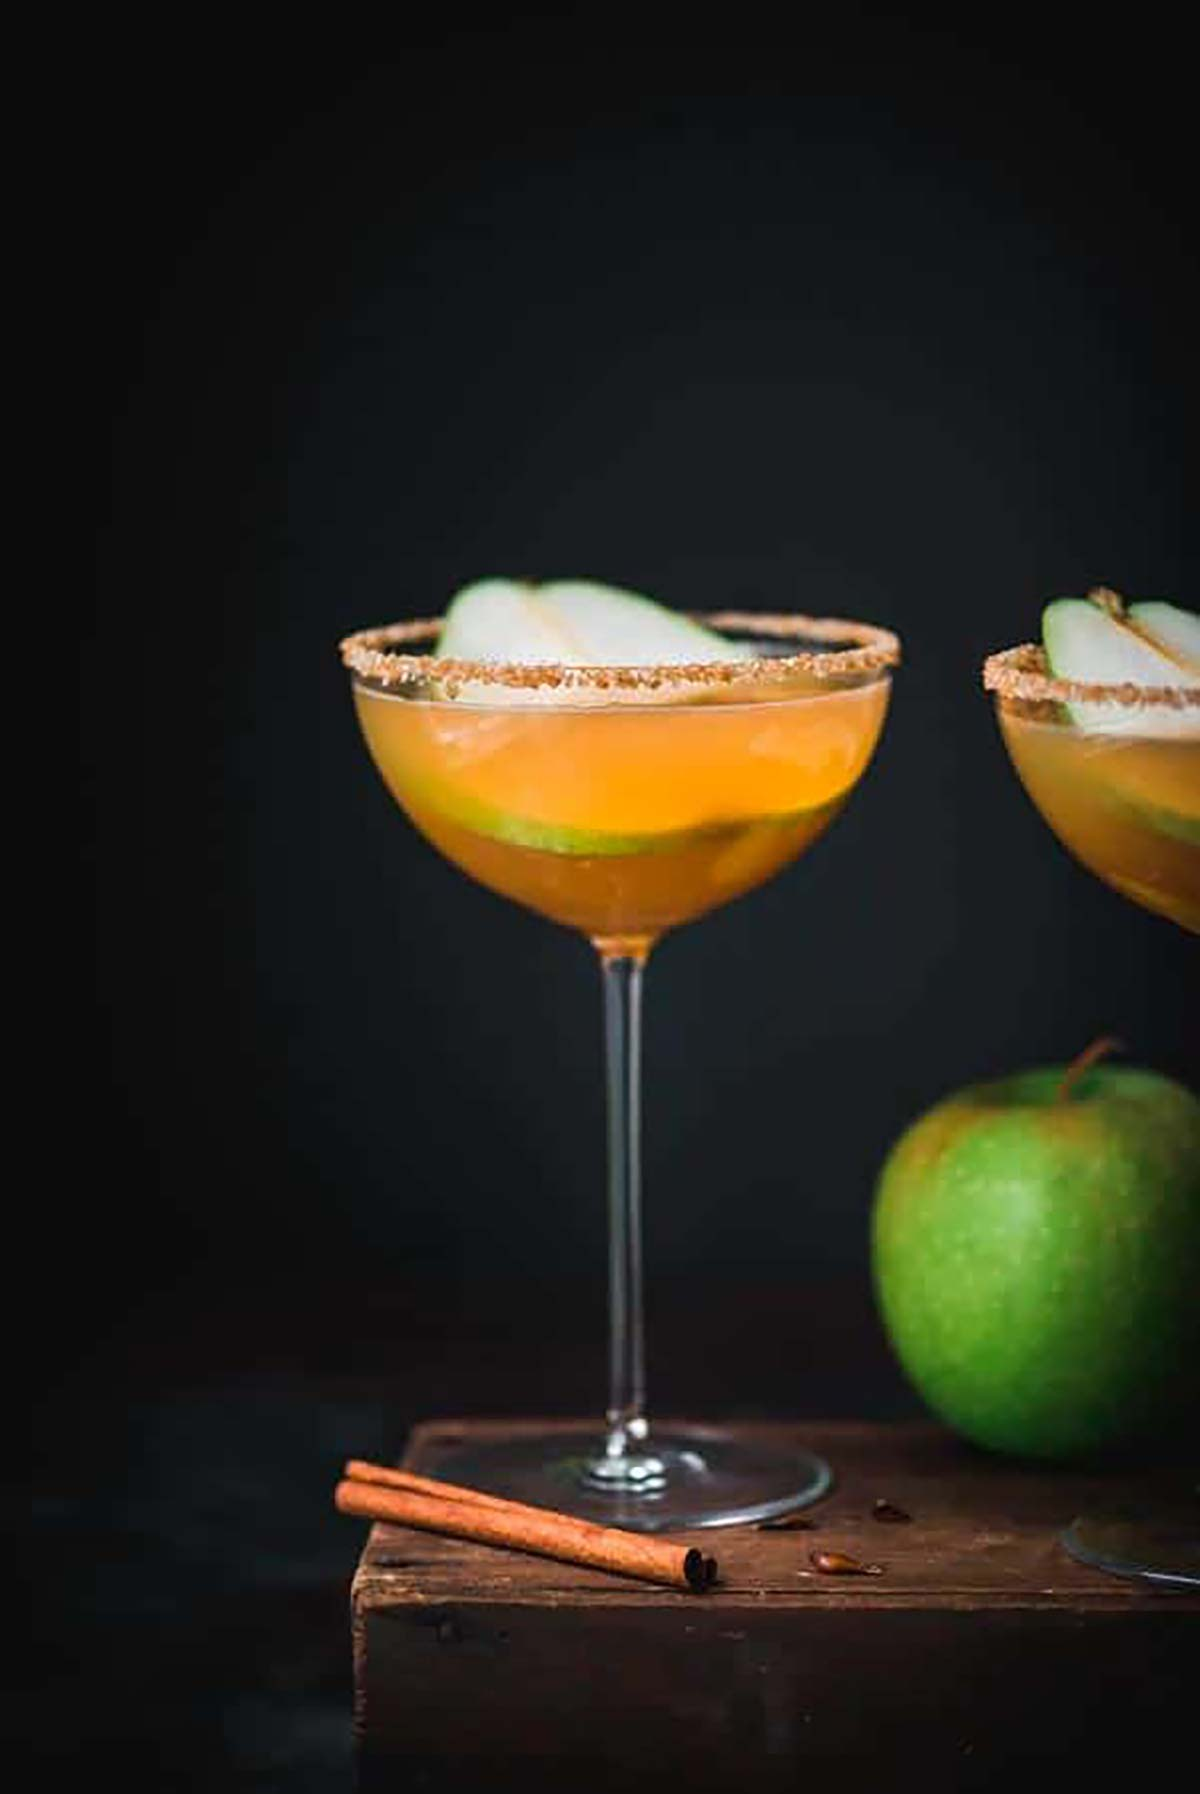 A marktini garnished with a pear slice and a sugar rim beside a green apple.